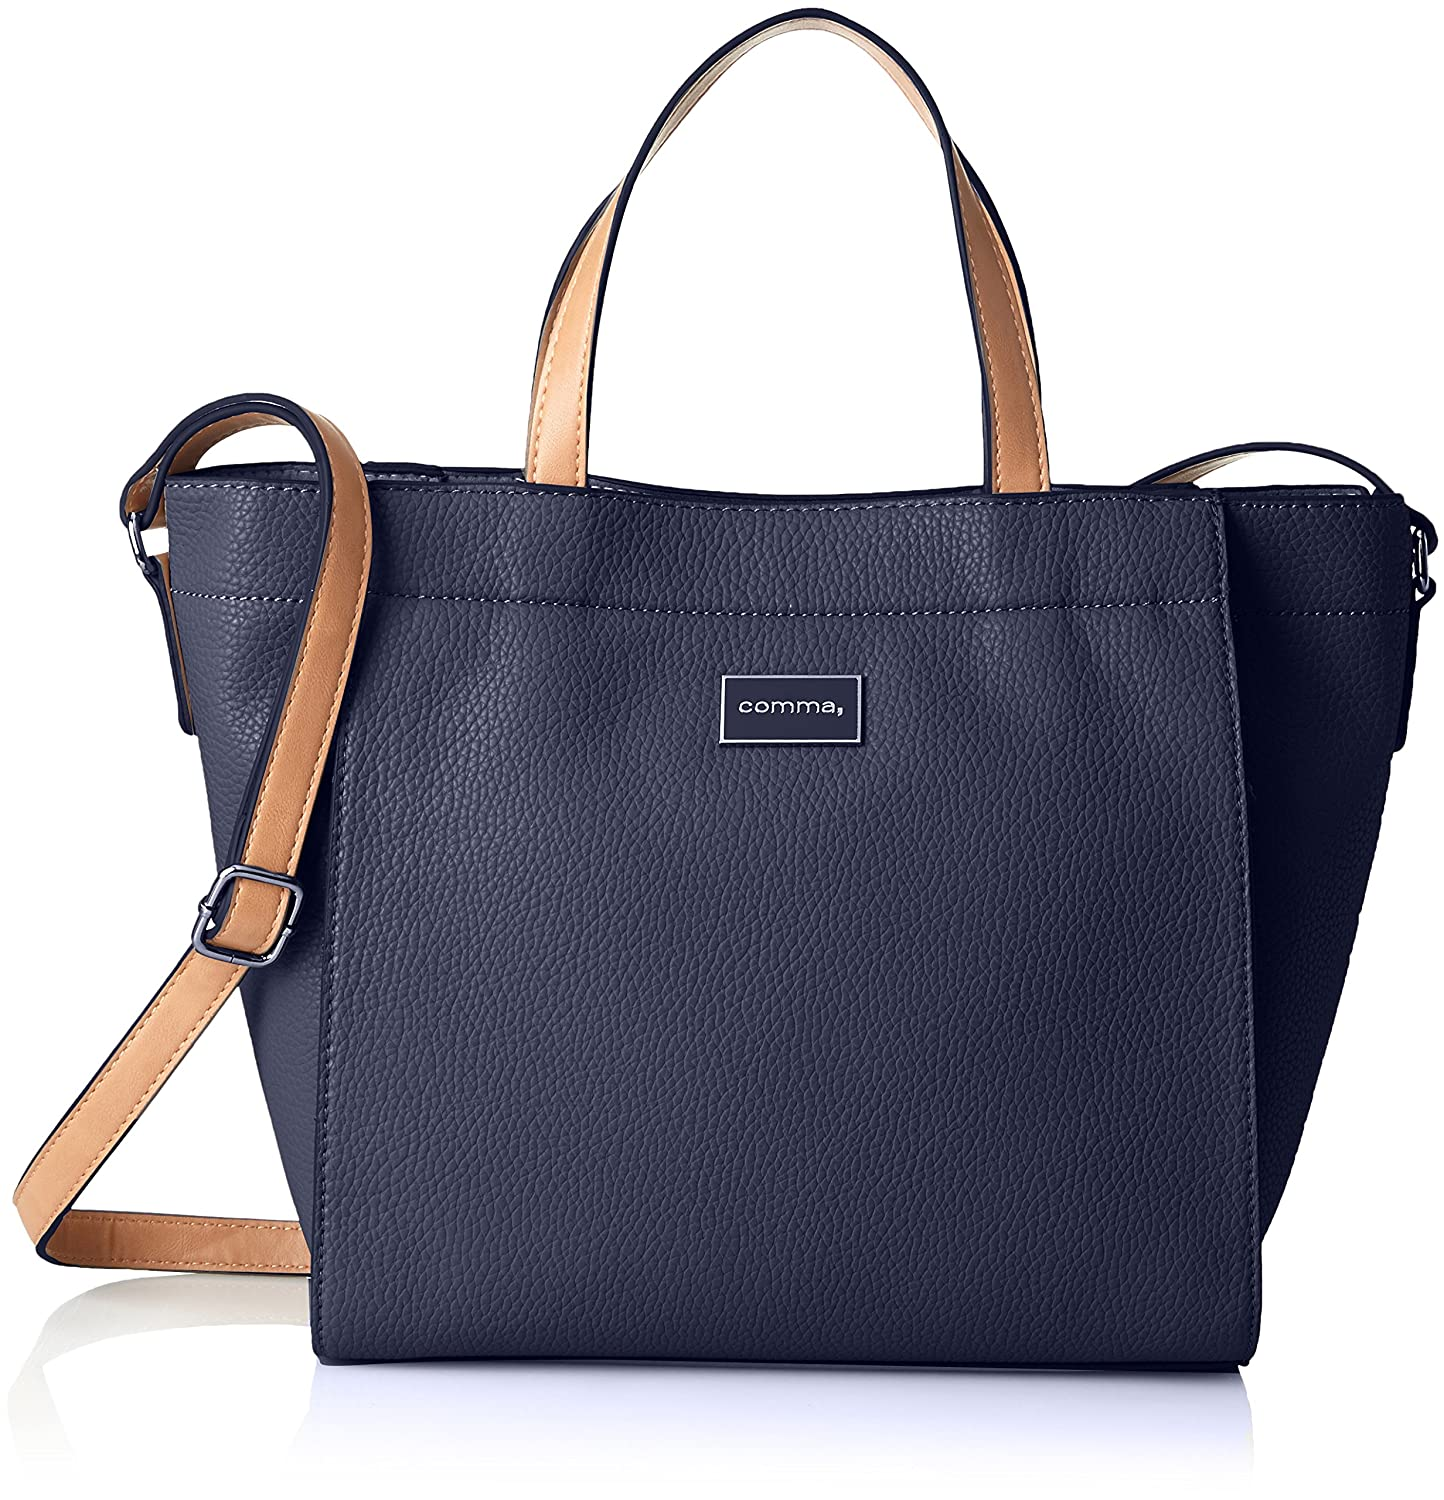 comma Damen Beautiful Smile Handbag Lhz Handgelenkstasche, 14x27x38 cm Blau (Dark Blue) 4180000009